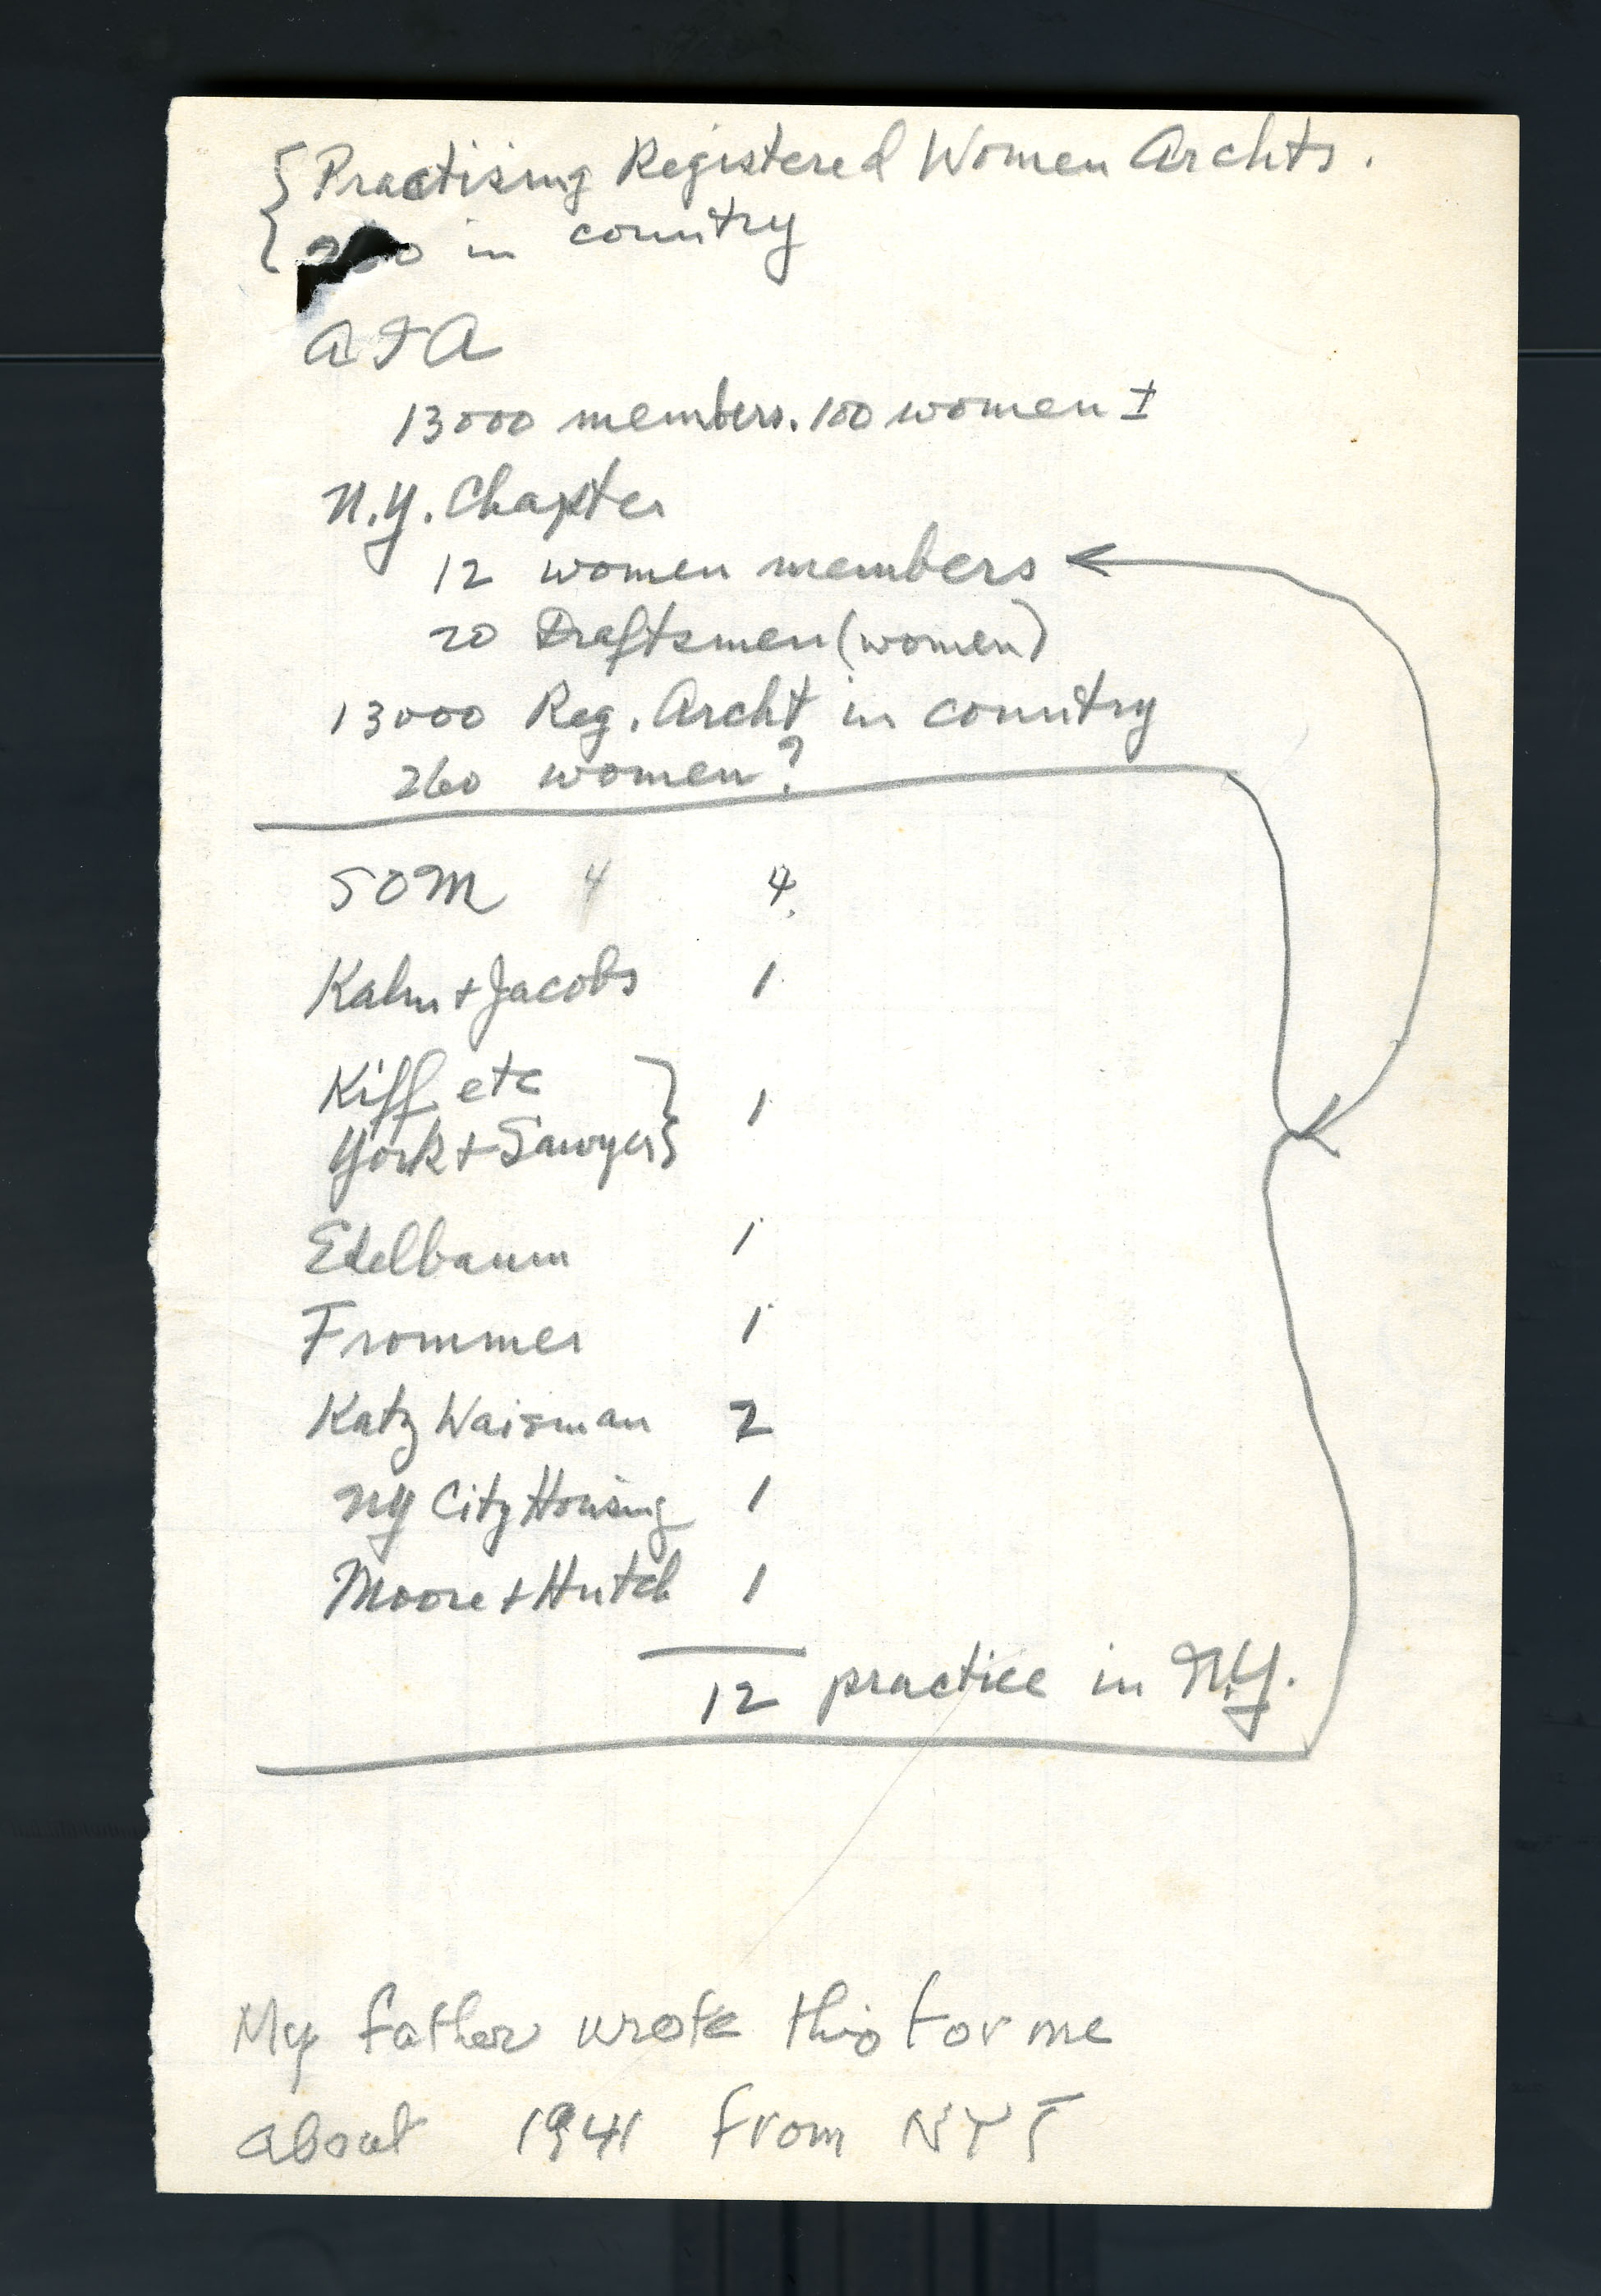 From Ms2007-017 Natalie de Blois Architectural Collection.  Note from de Blois's father listing the number of women practicing architecture in 1941.